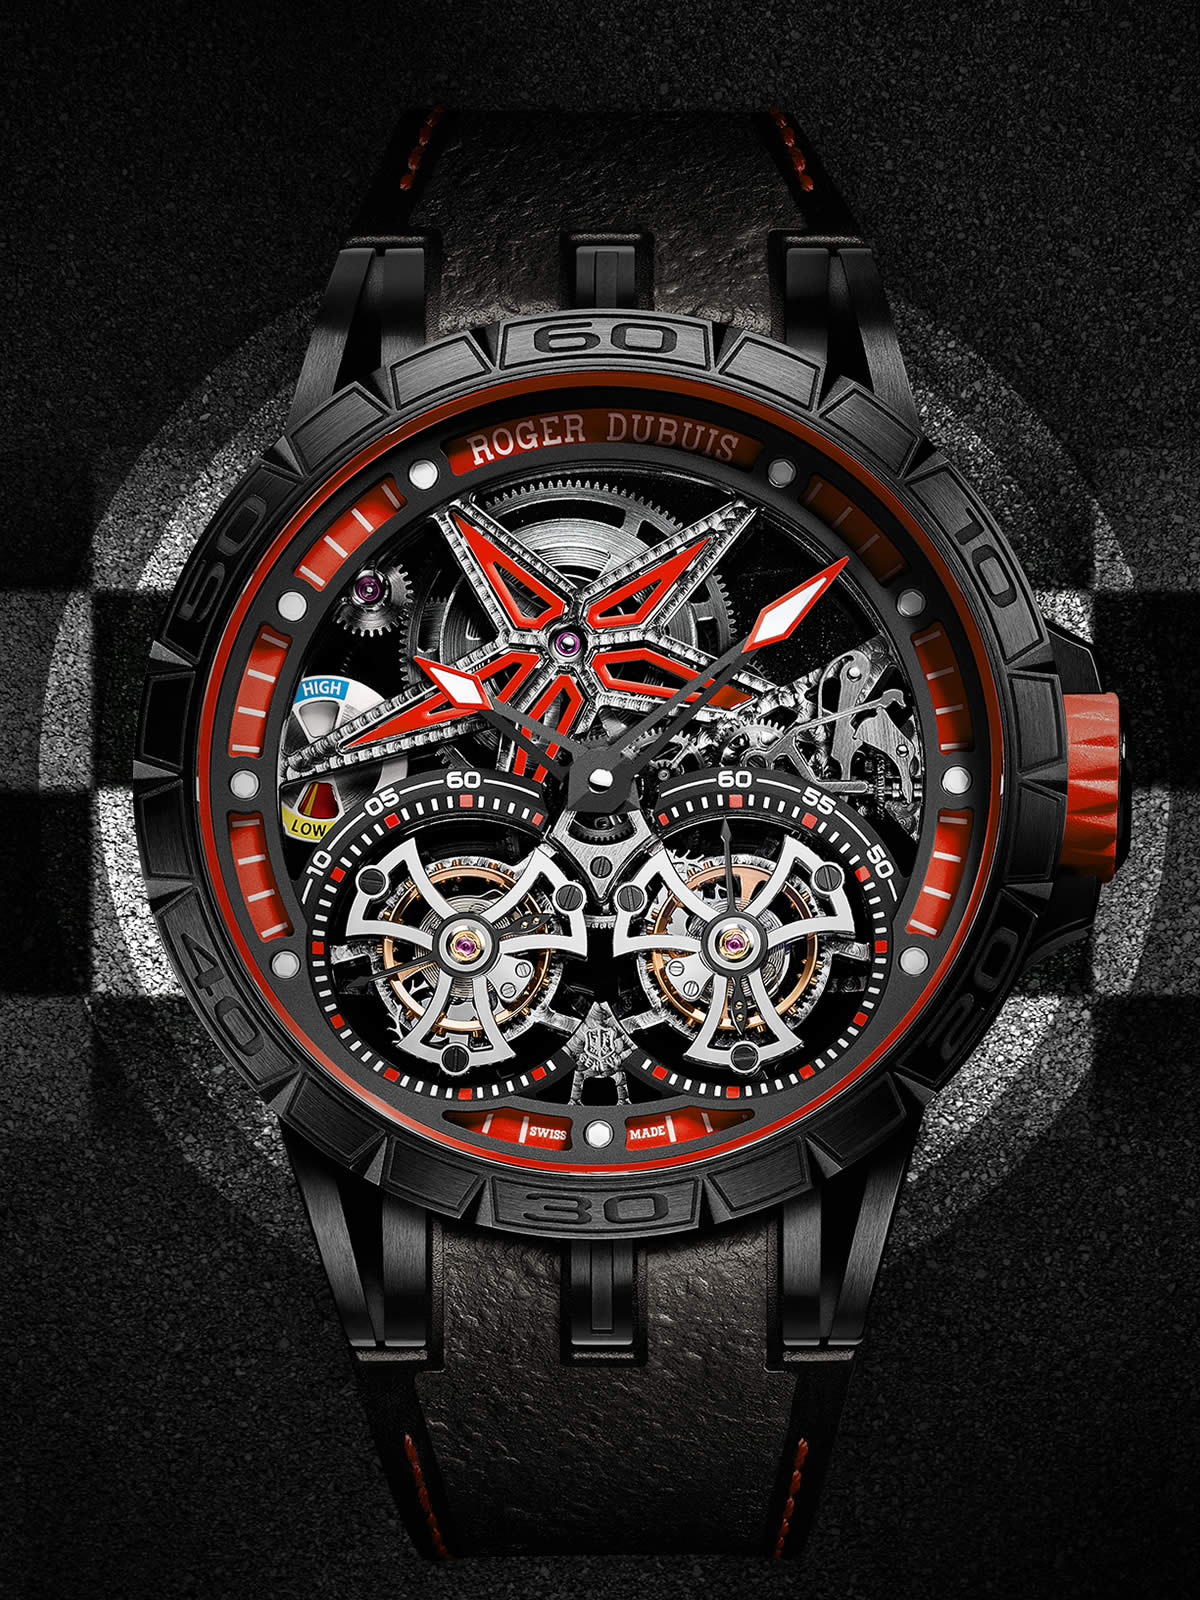 rddbex0657-roger-dubuis-excalibur-spider-pirelli-double-flying-tourbillon-1-.jpg